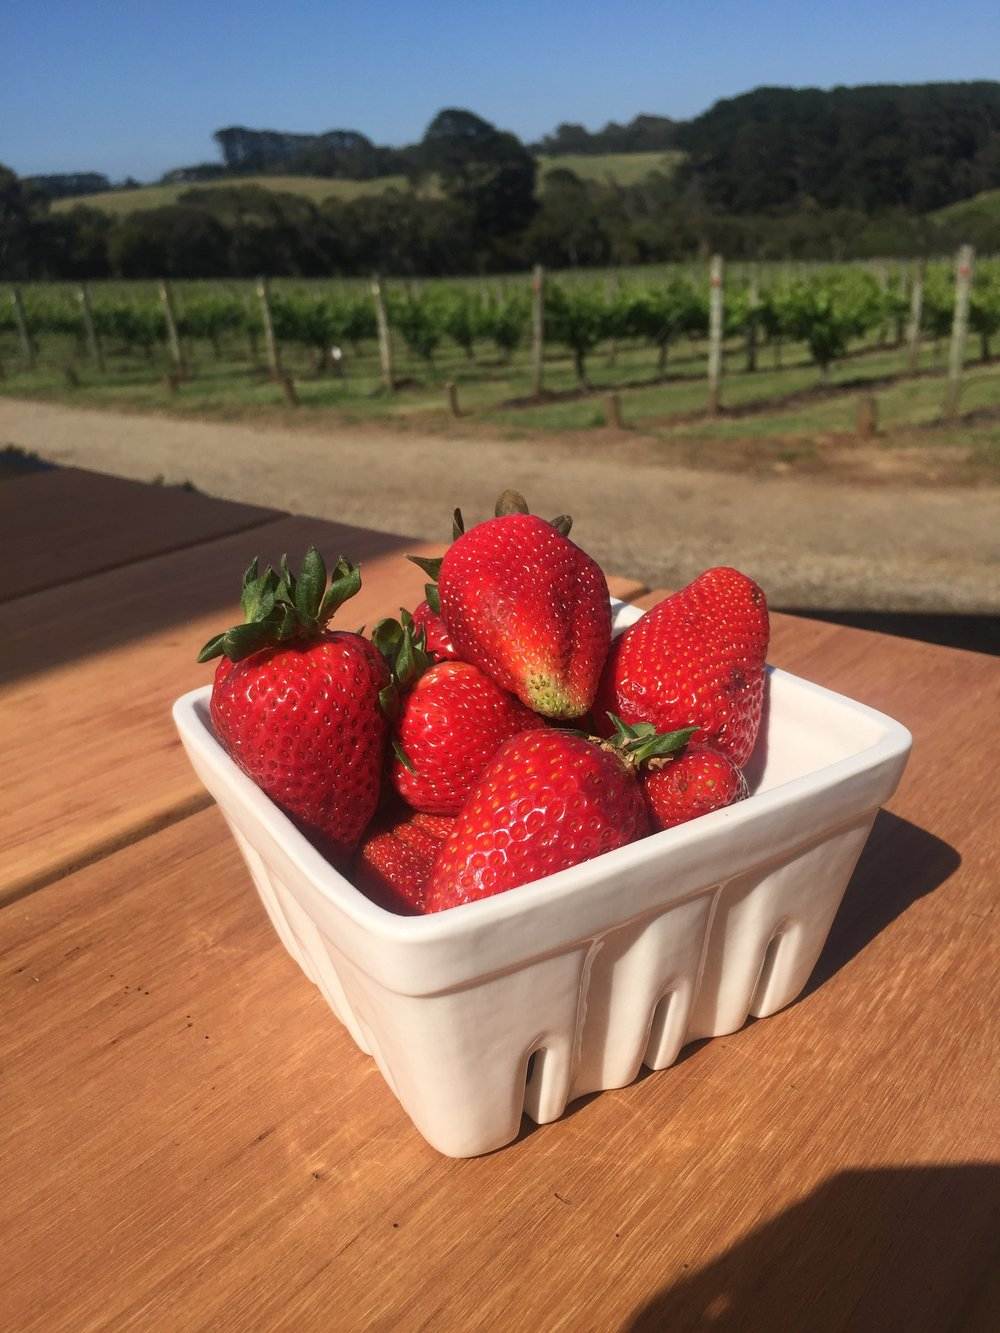 mornington peninsula strawberries part of all our exclusive wine tours